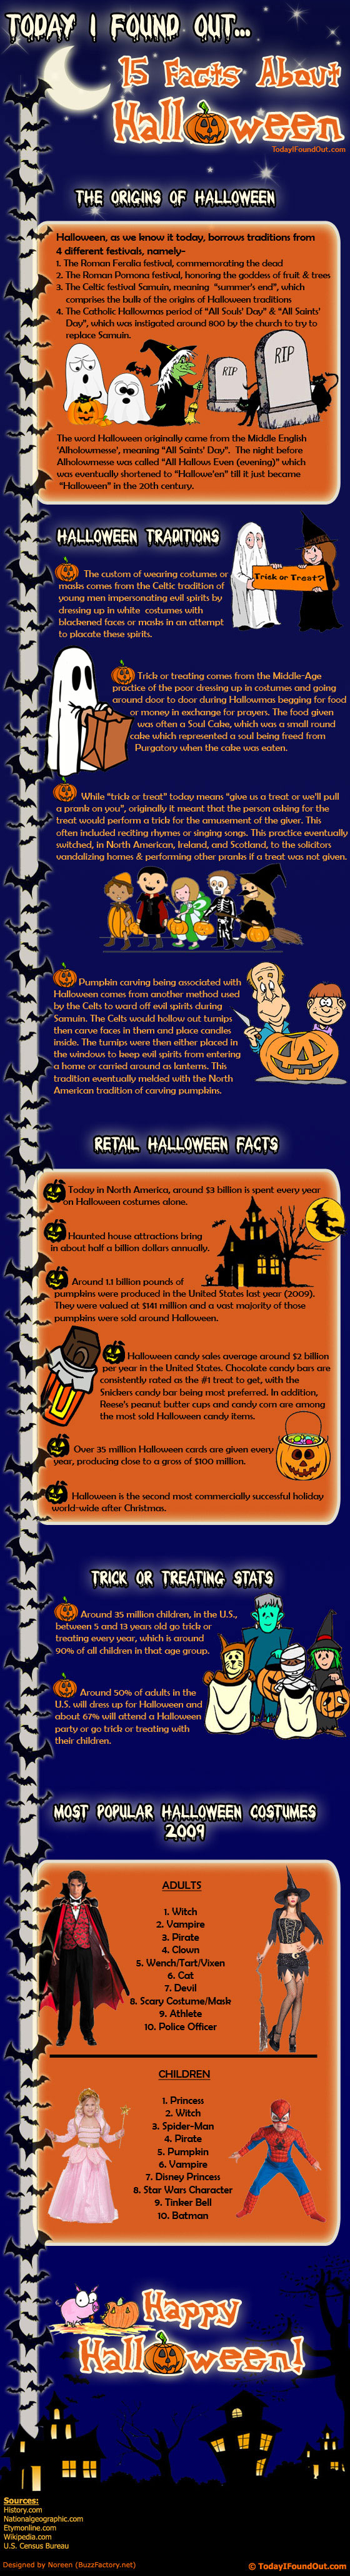 15 Facts About Halloween-Infographic